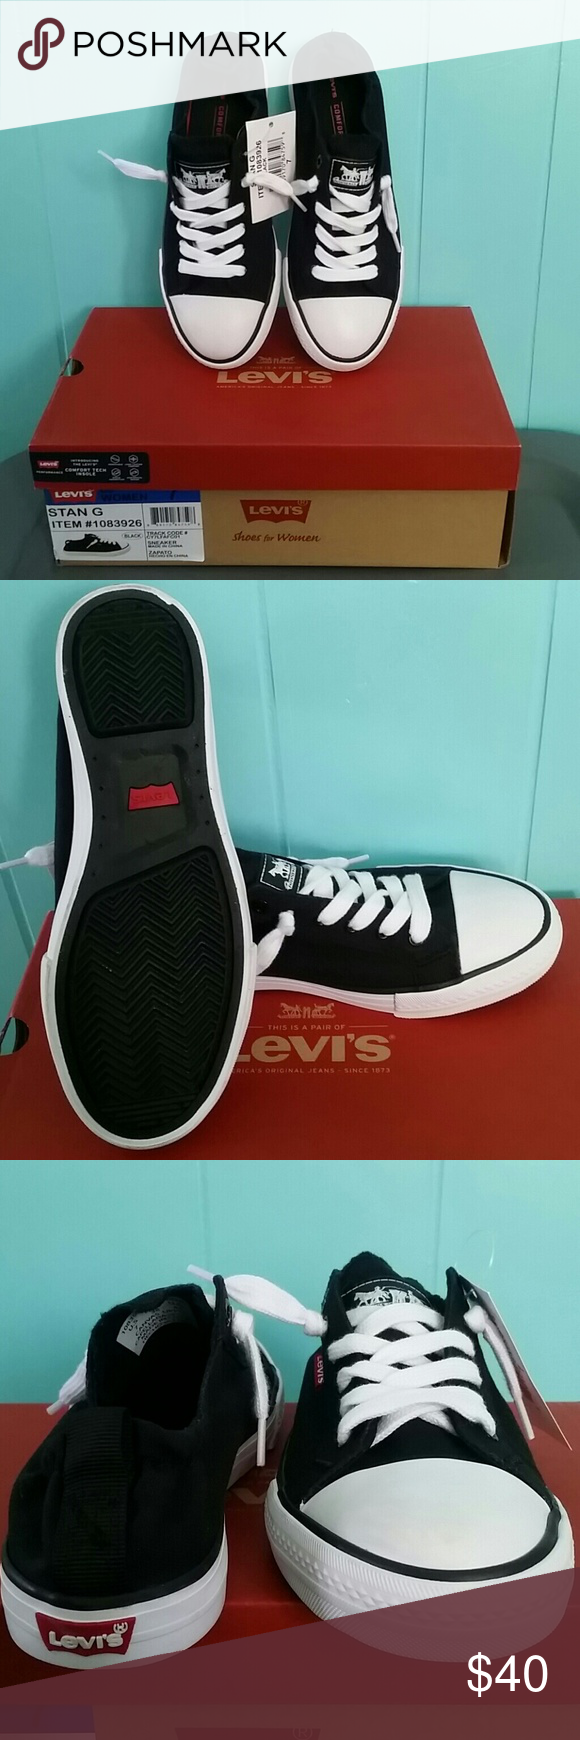 56bec8f8a20bb5 NIB Stan G Levis Black Sneaker Canvas upper with comfort tech insole. Levi s  Shoes Sneakers